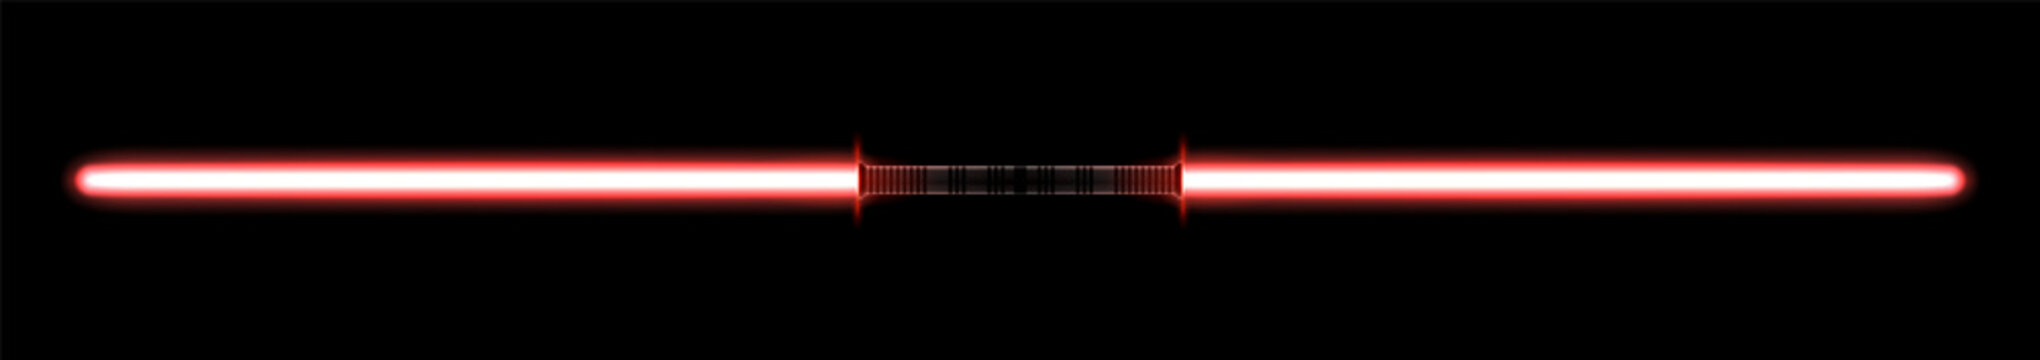 Isolated red double bladed light sword. 2-sided laser melee weapon for the fight during the futuristic wars